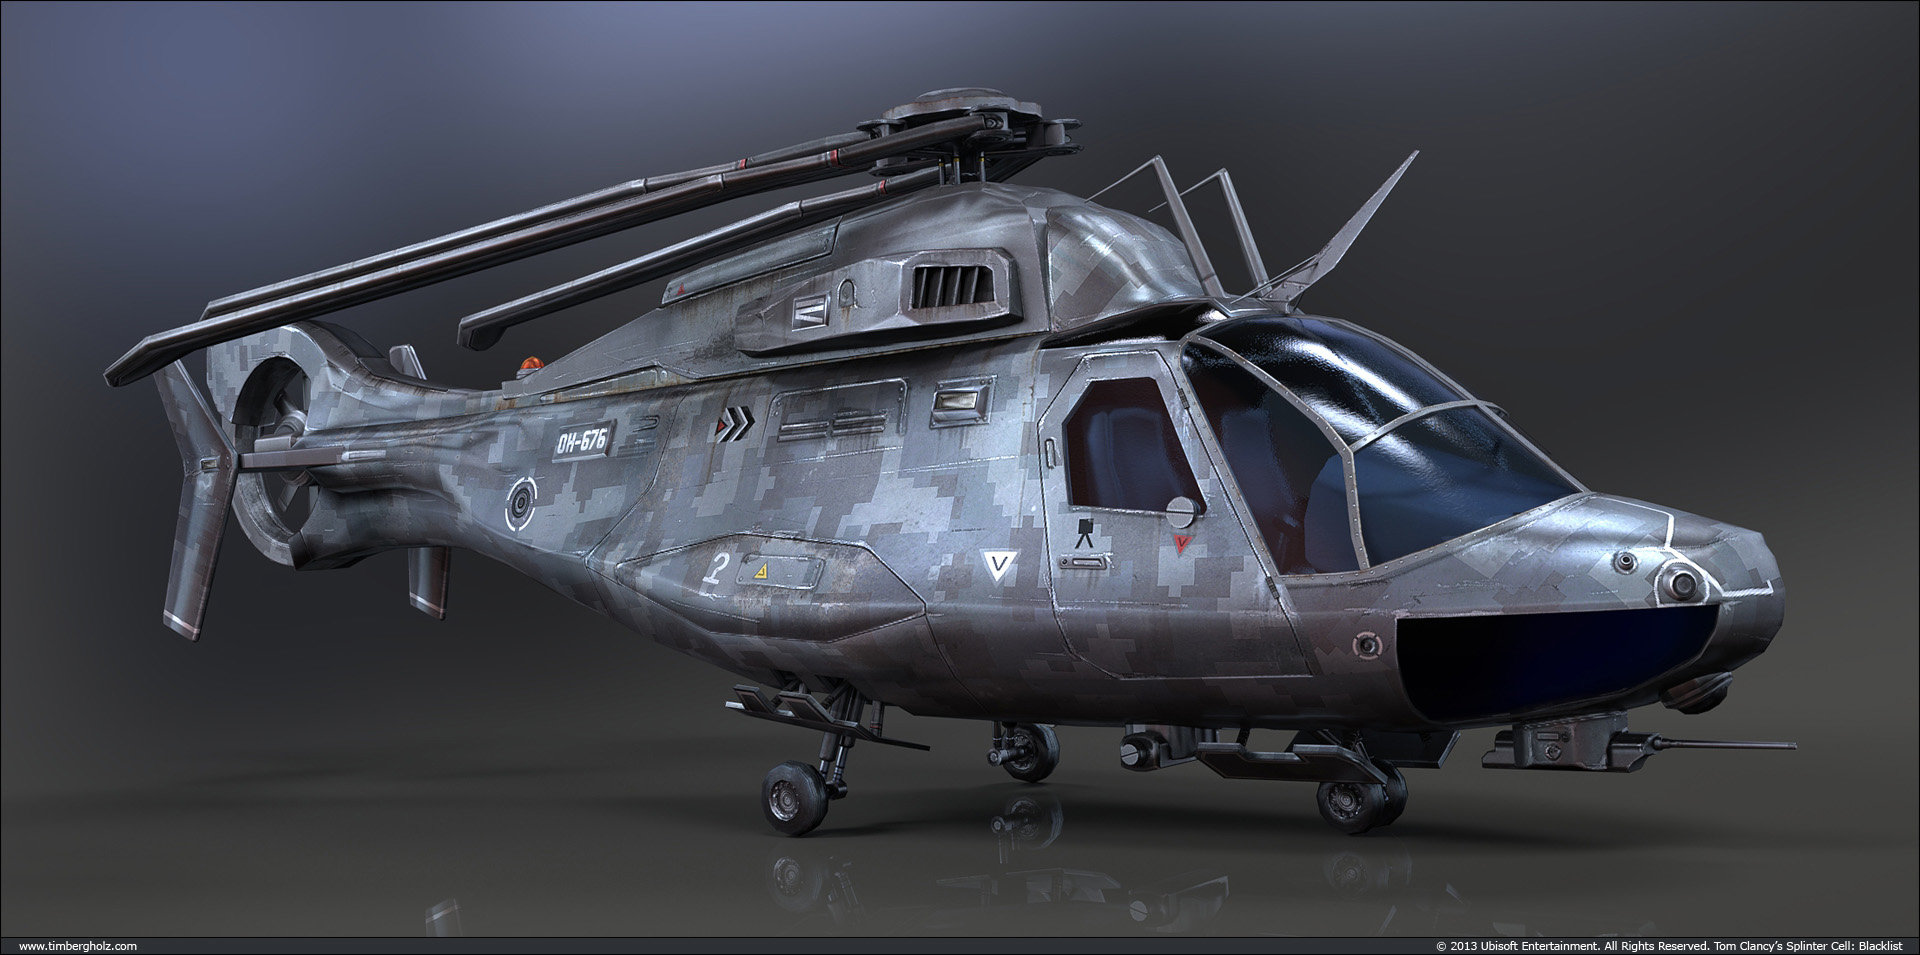 Tim bergholz scout helicopter